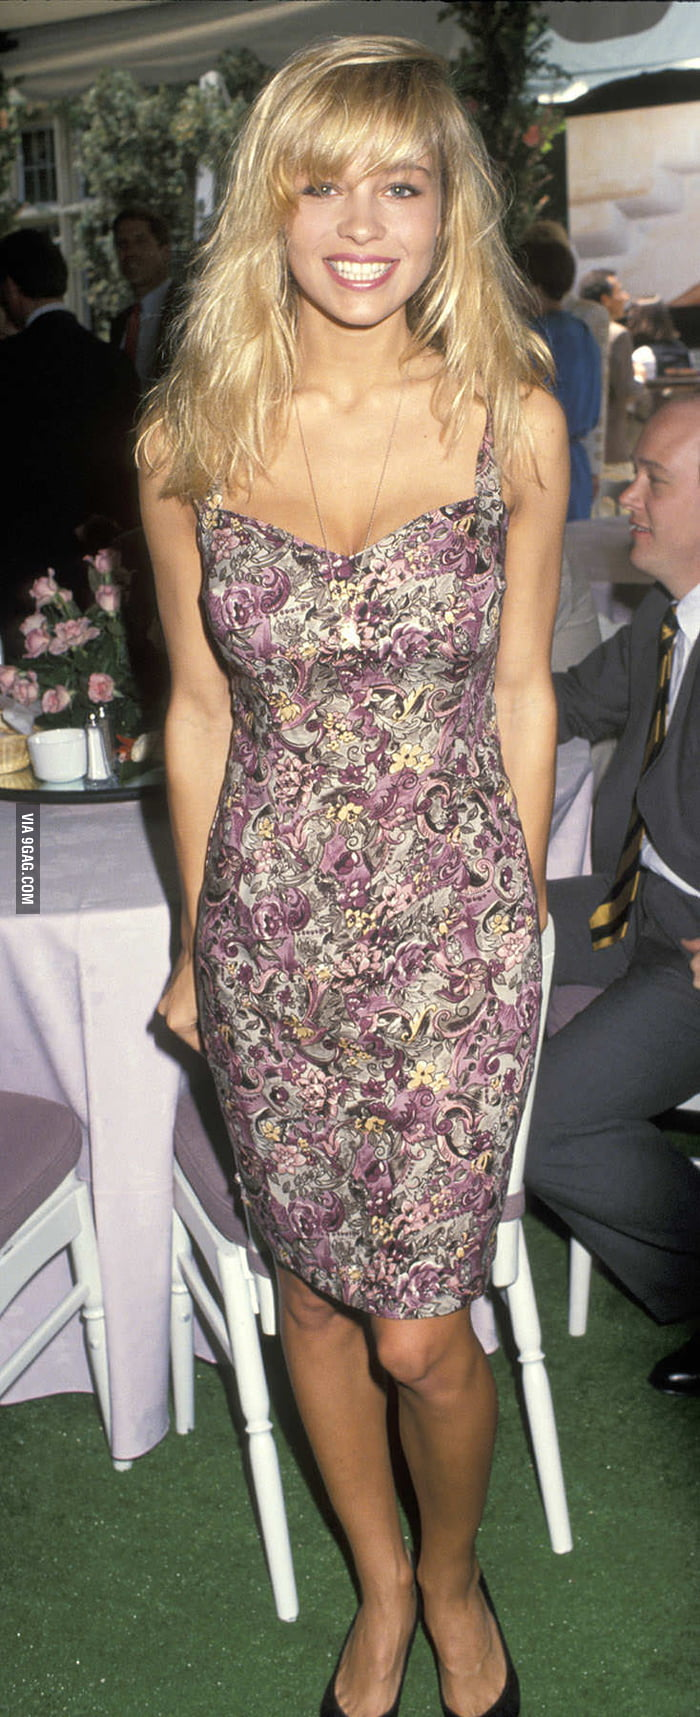 This is Pamela Anderson before surgeries!